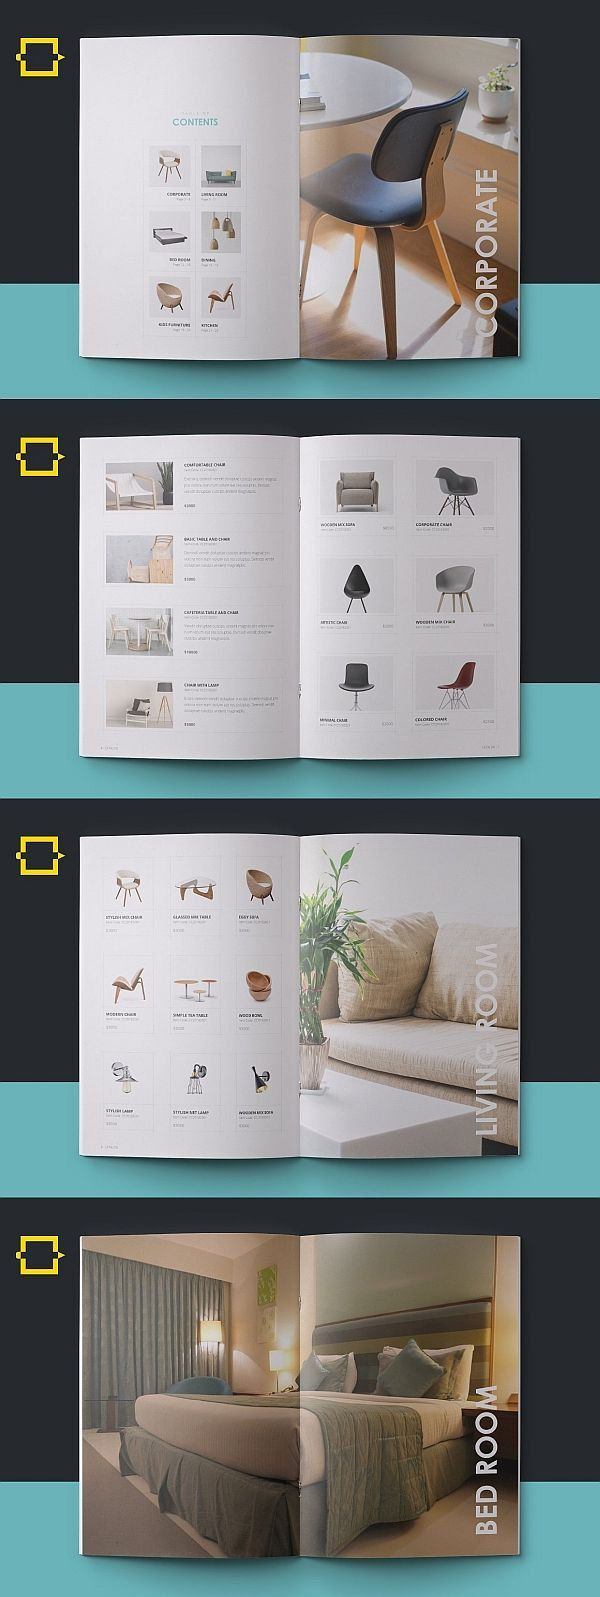 produktkatalog in 2020 (with images)   catalog design layout